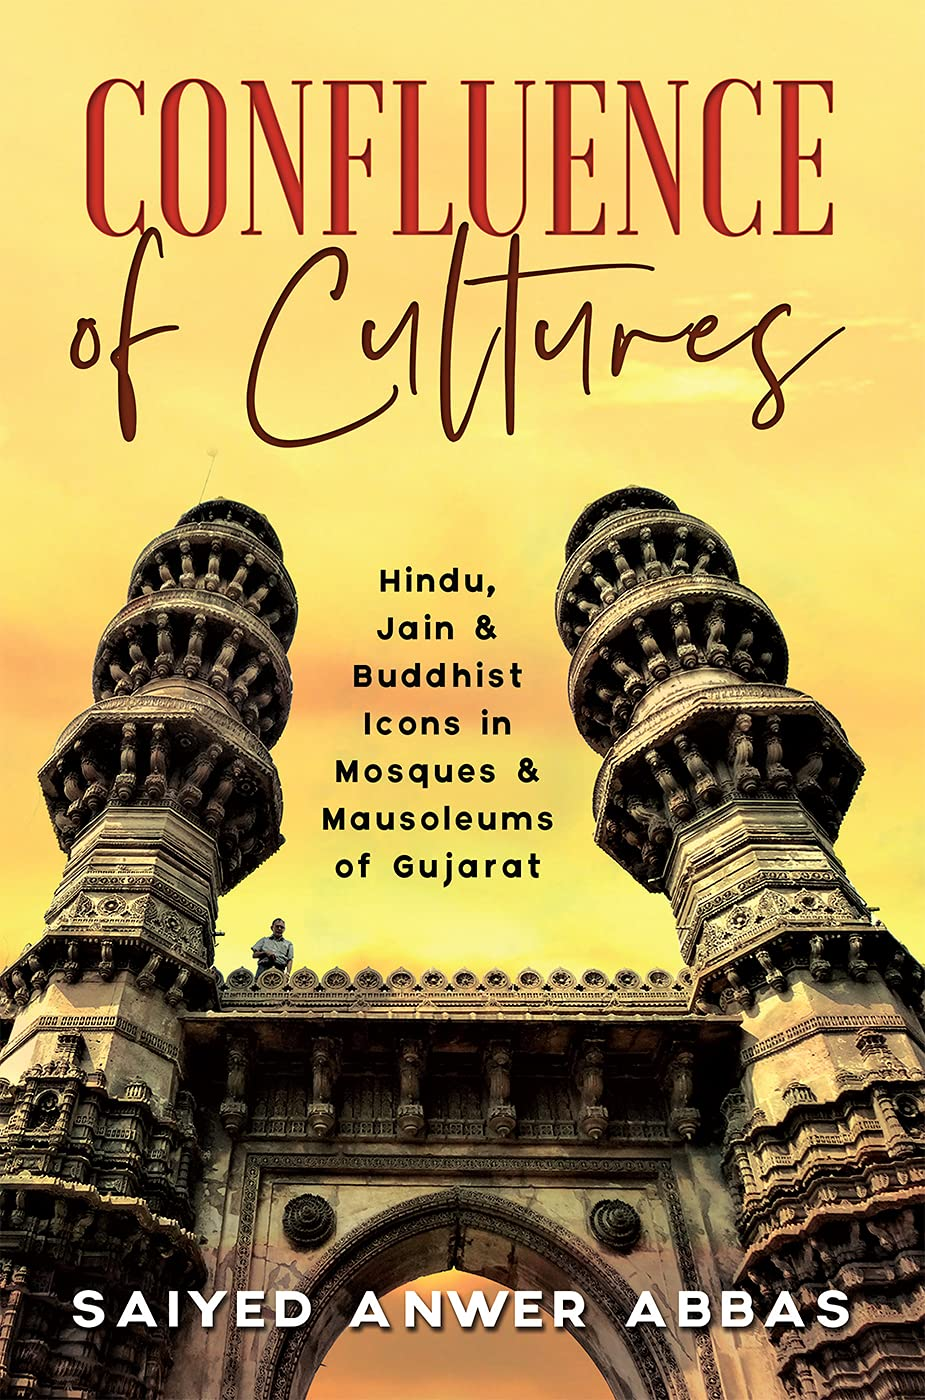 Confluence of Cultures : Hindu, Jain & Buddhist Icons in Mosques & Mausoleums of Gujarat